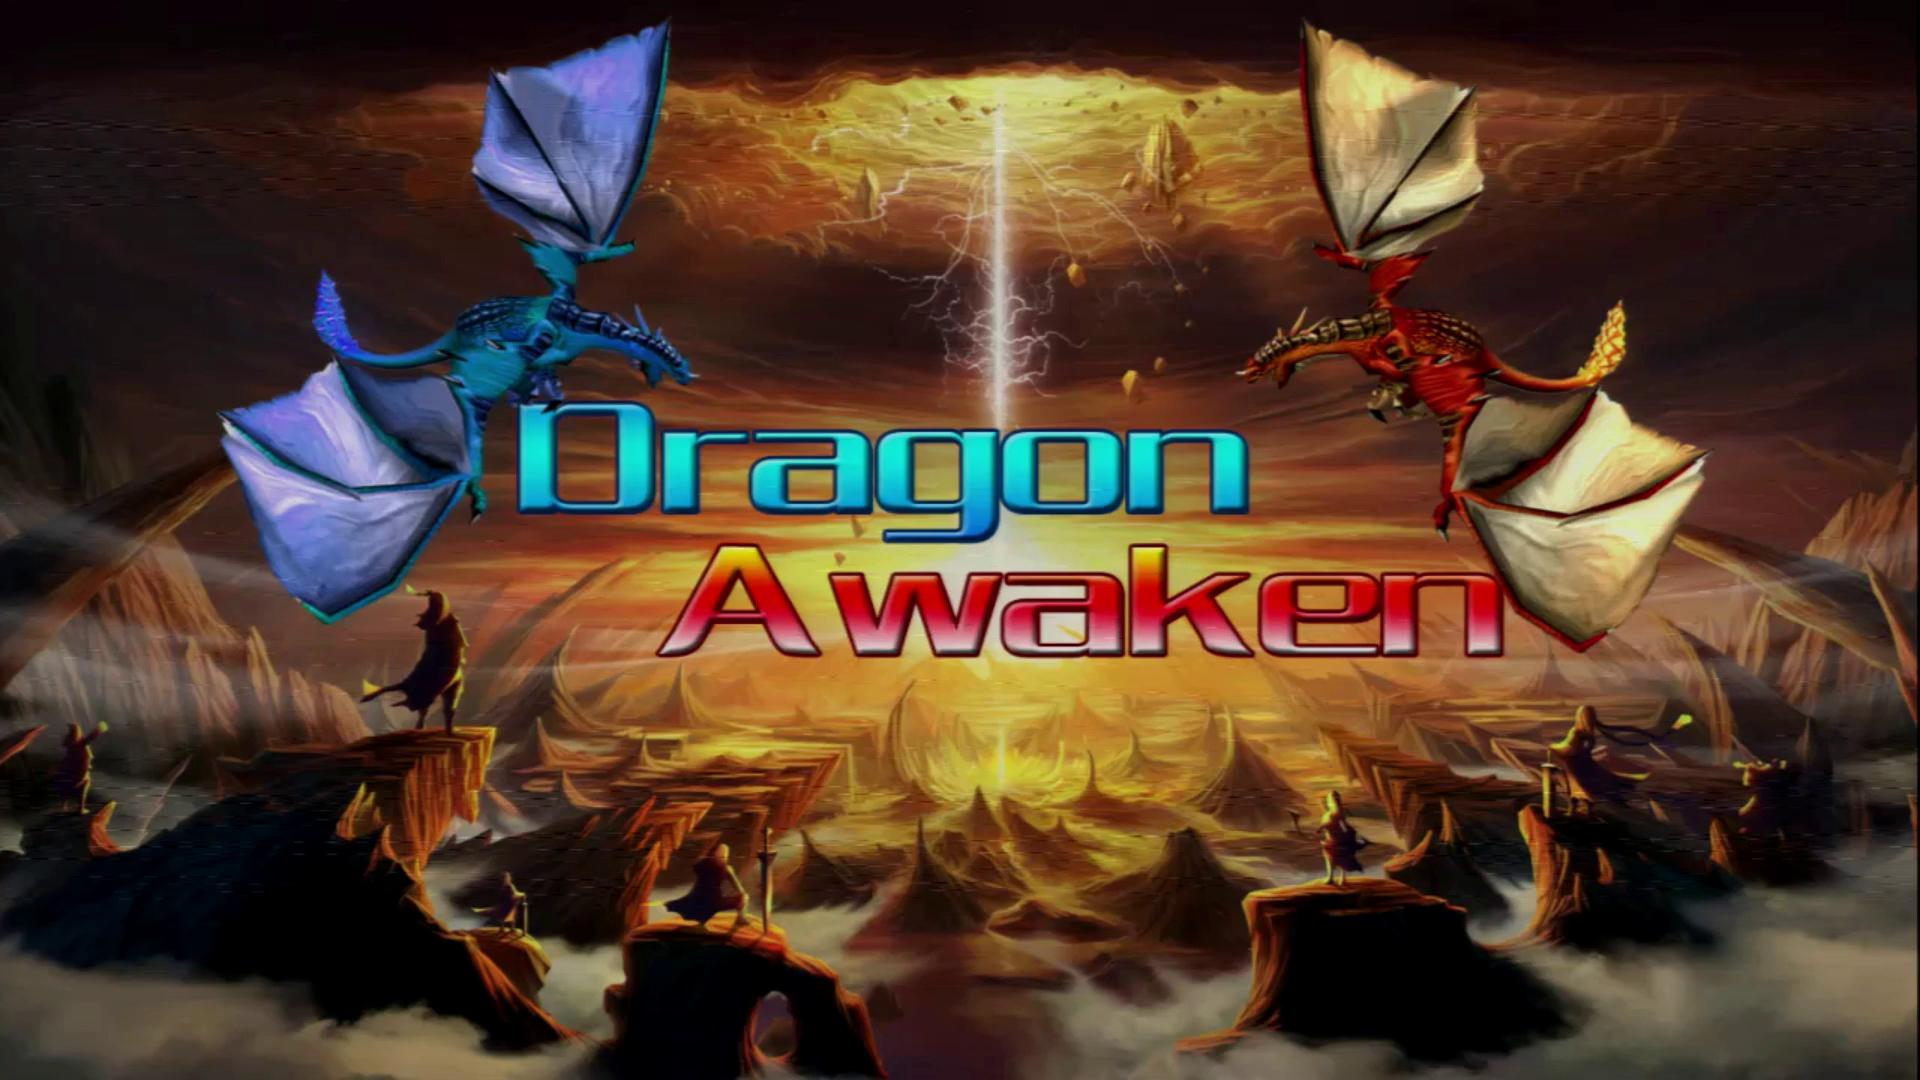 Dragon Awaken